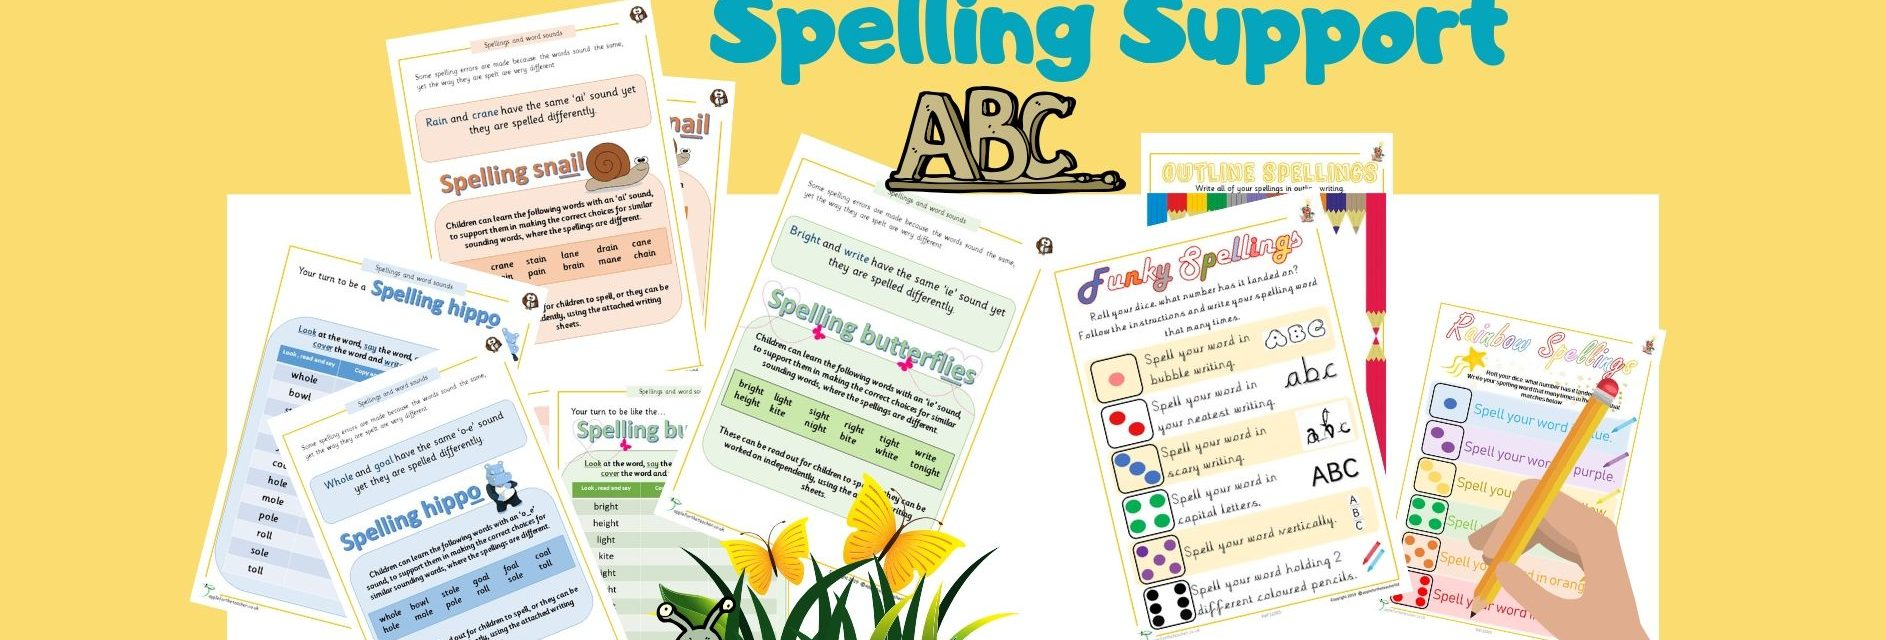 ABC Spelling Support